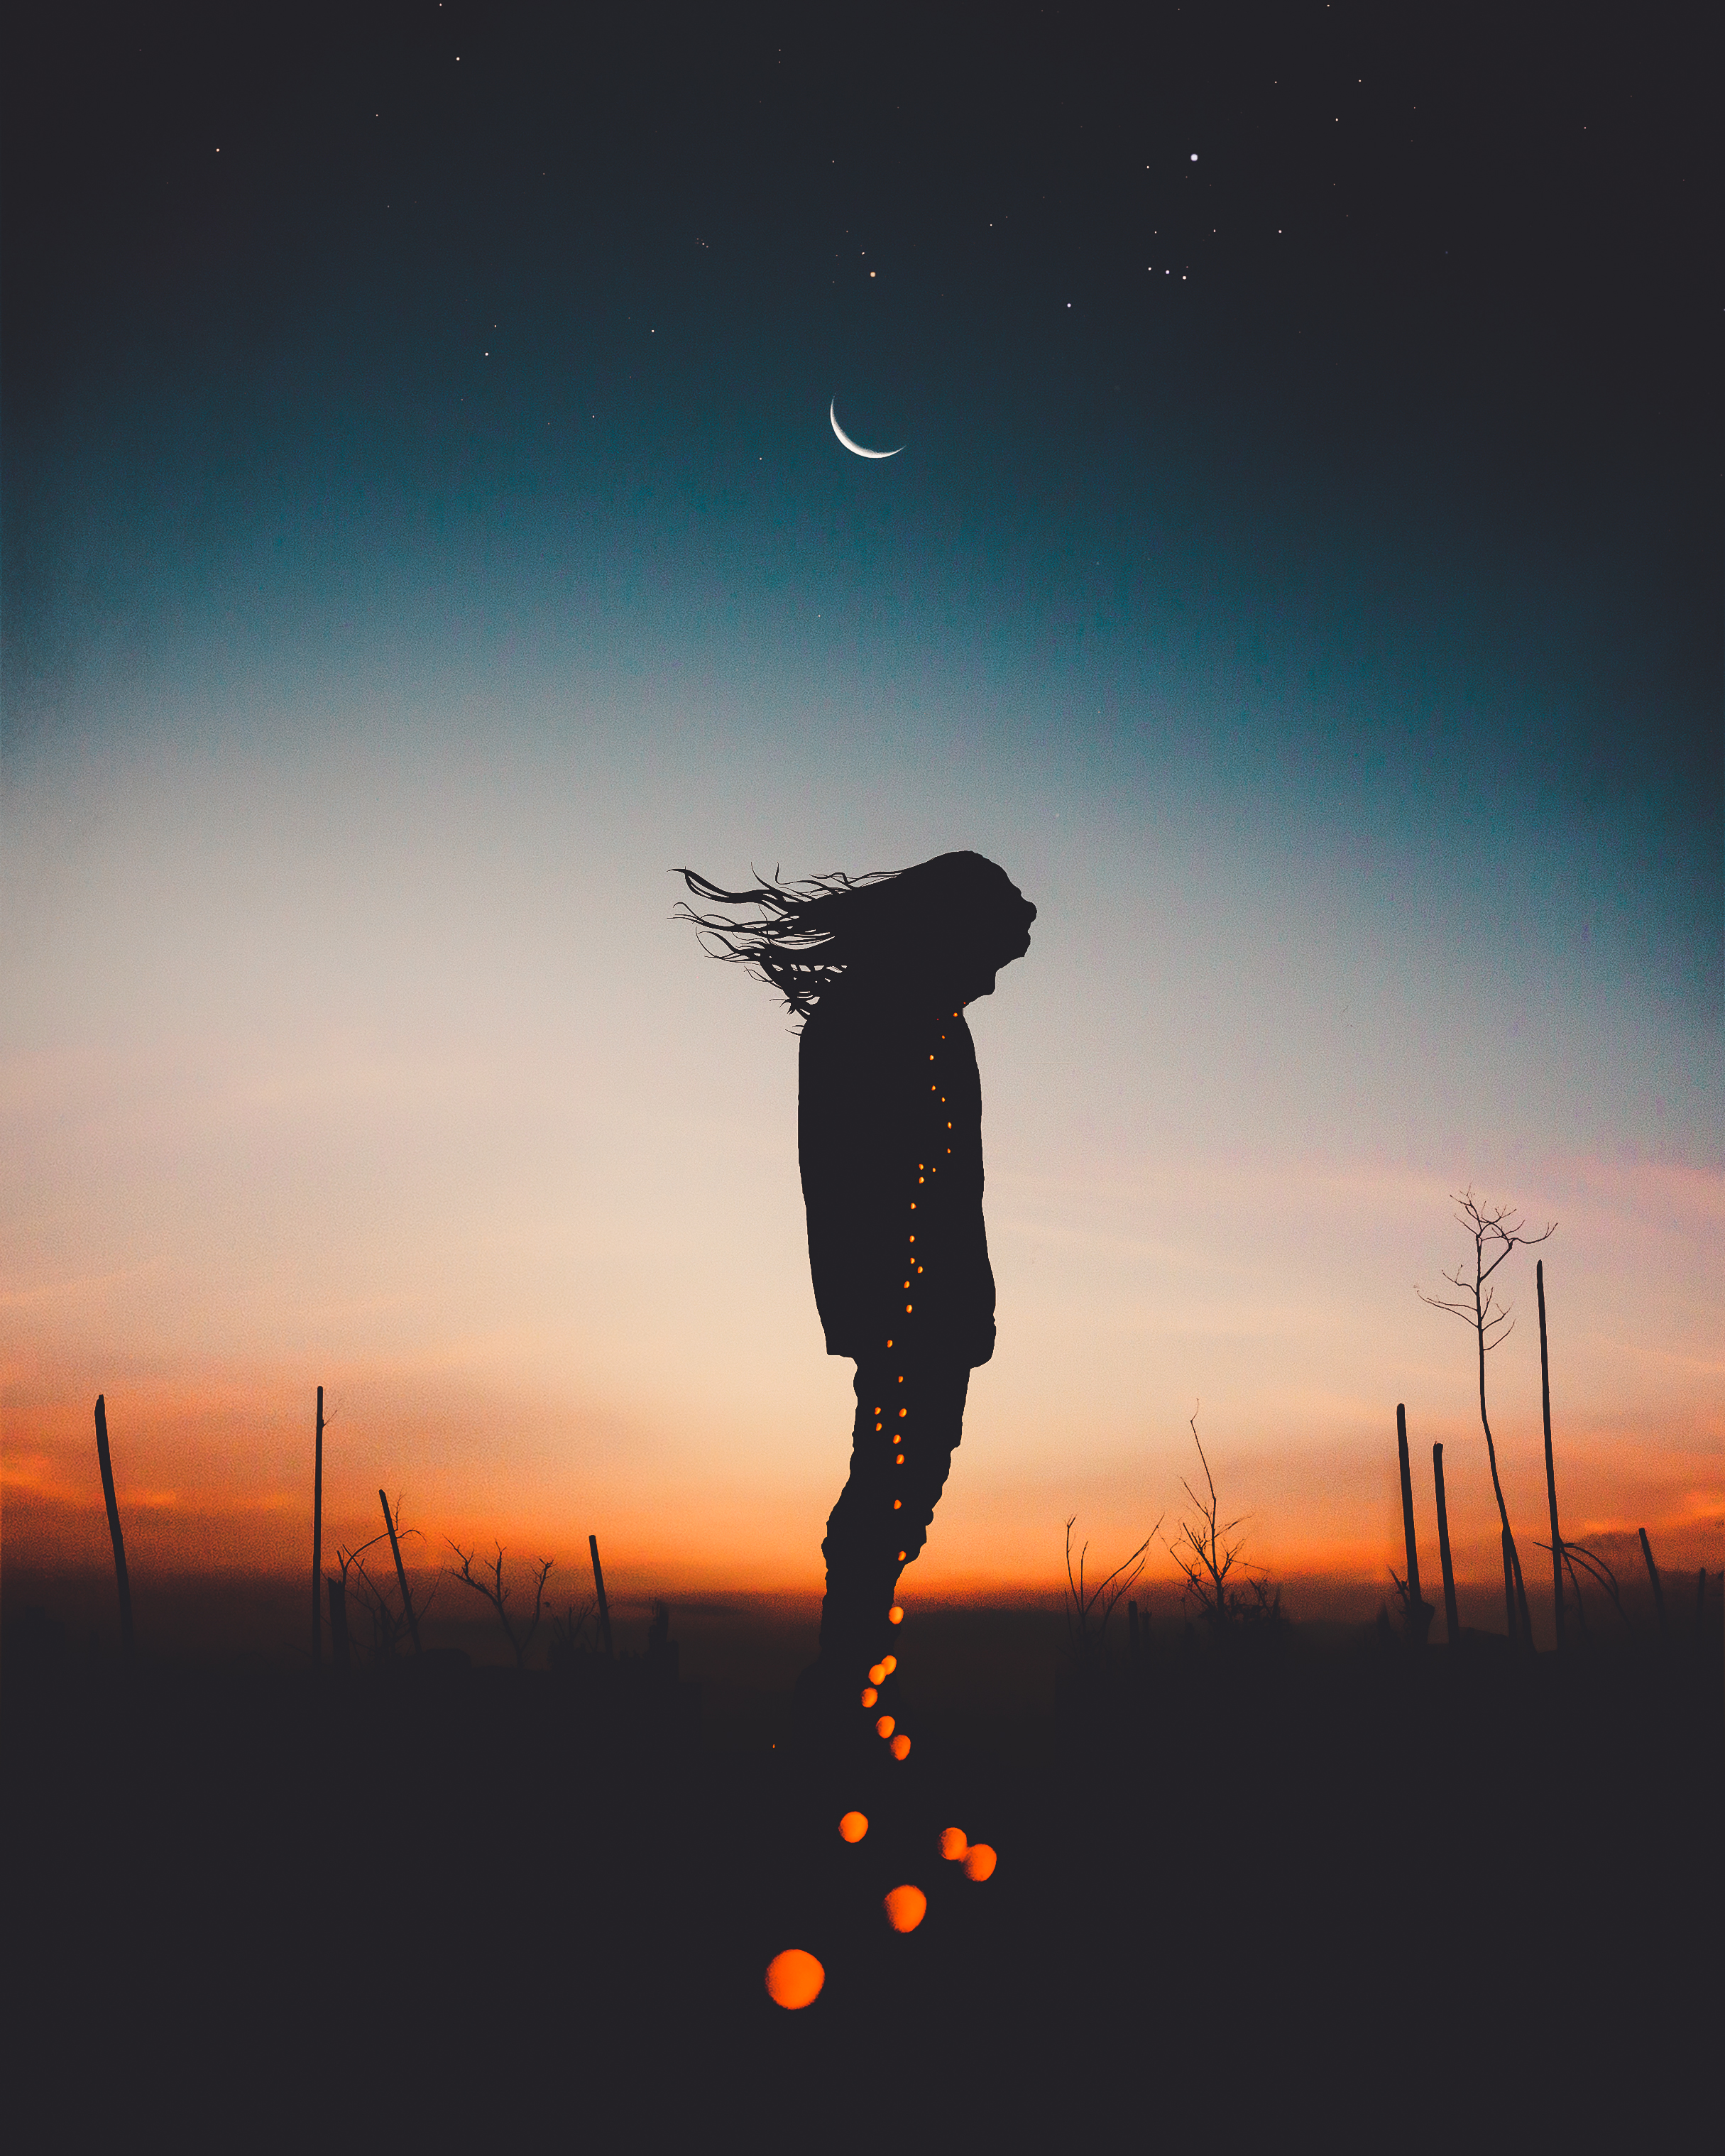 152965 download wallpaper Dark, Silhouette, Human, Person, Shine, Light, Night, Sky screensavers and pictures for free